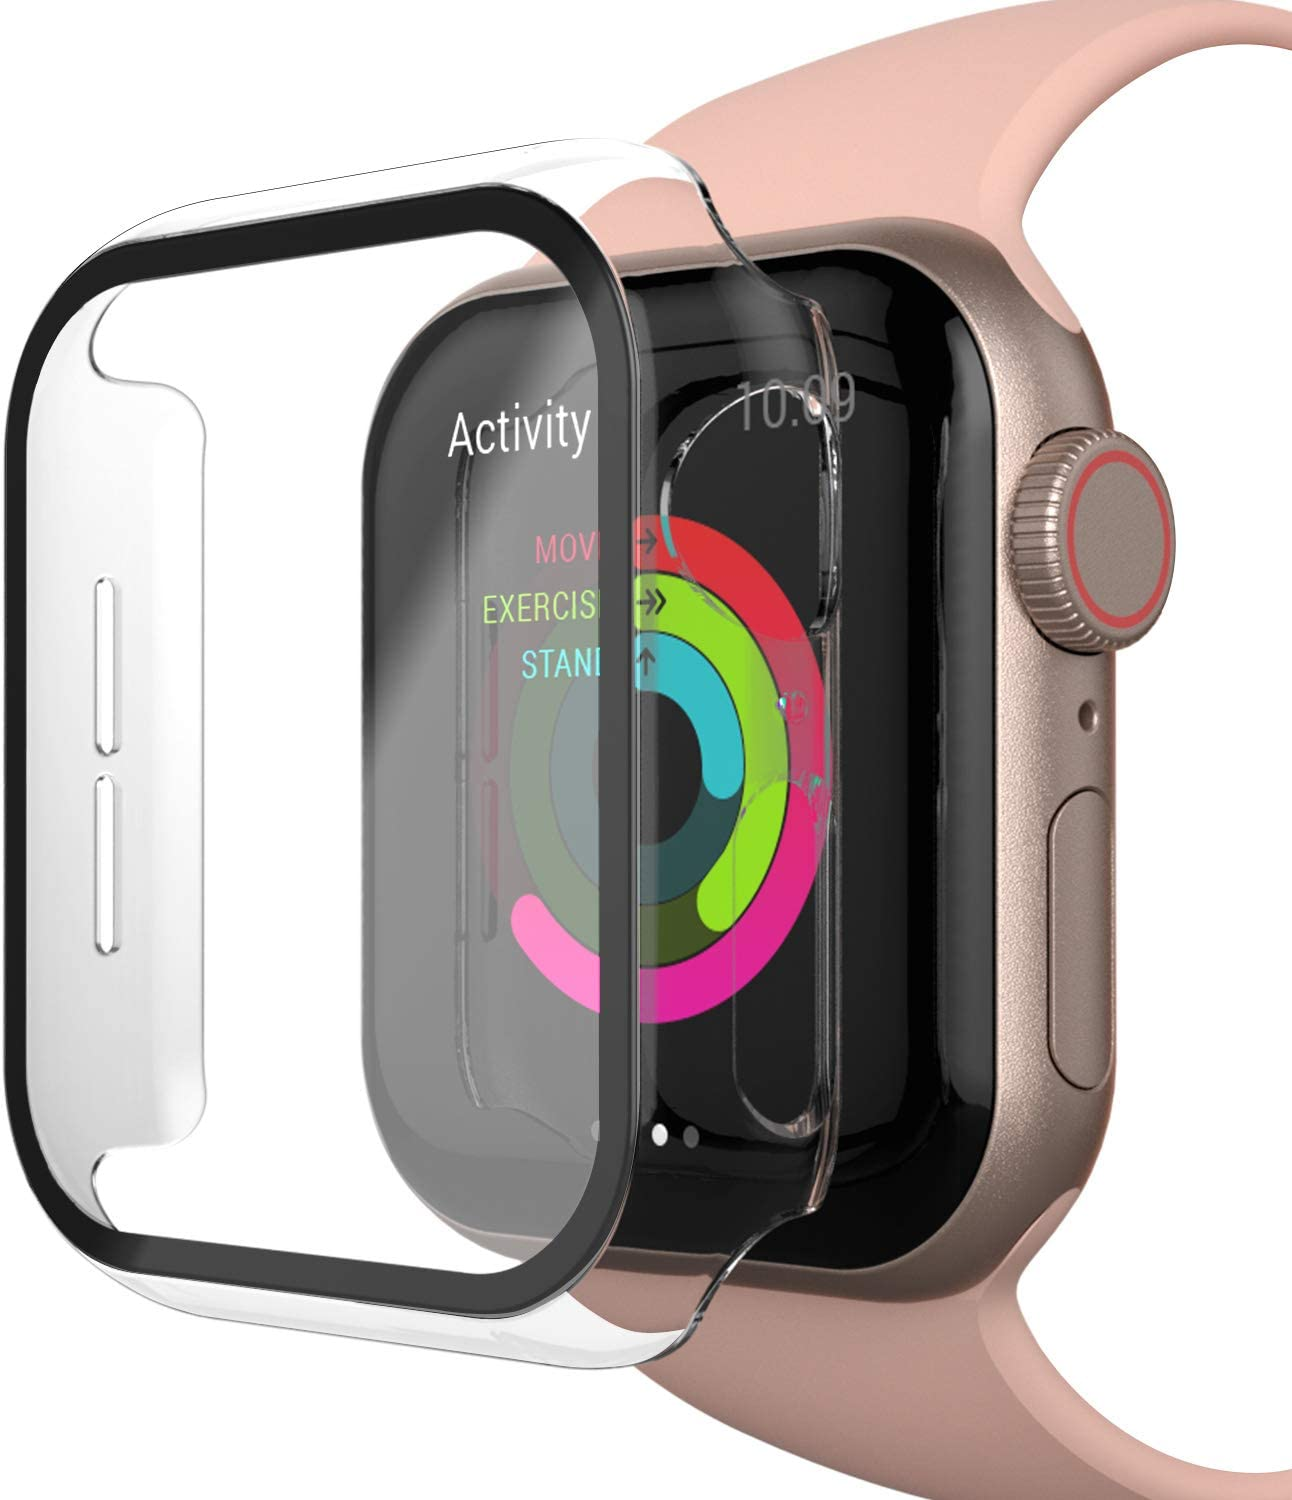 INTLIFE Case Compatible with Apple Watch Series 4/5/6/SE 44mm with Screen Protector, Matte Hard PC Protective Cover with Tempered Glass Screen Protector Accessories for iWatch (Transparent, 44mm)